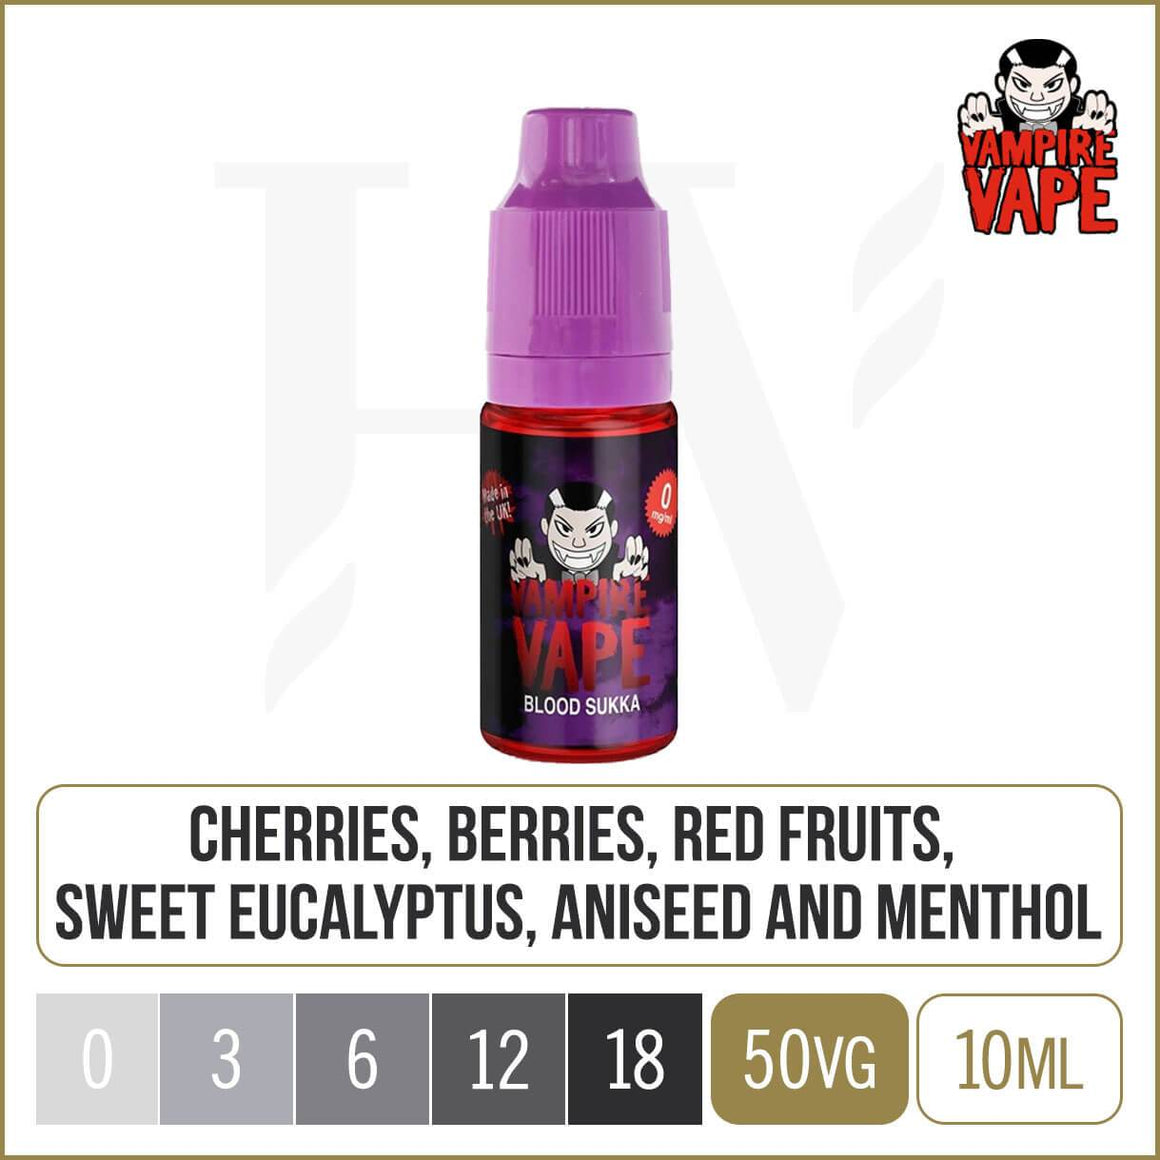 Vampire Vape Blood Sukka e liquid